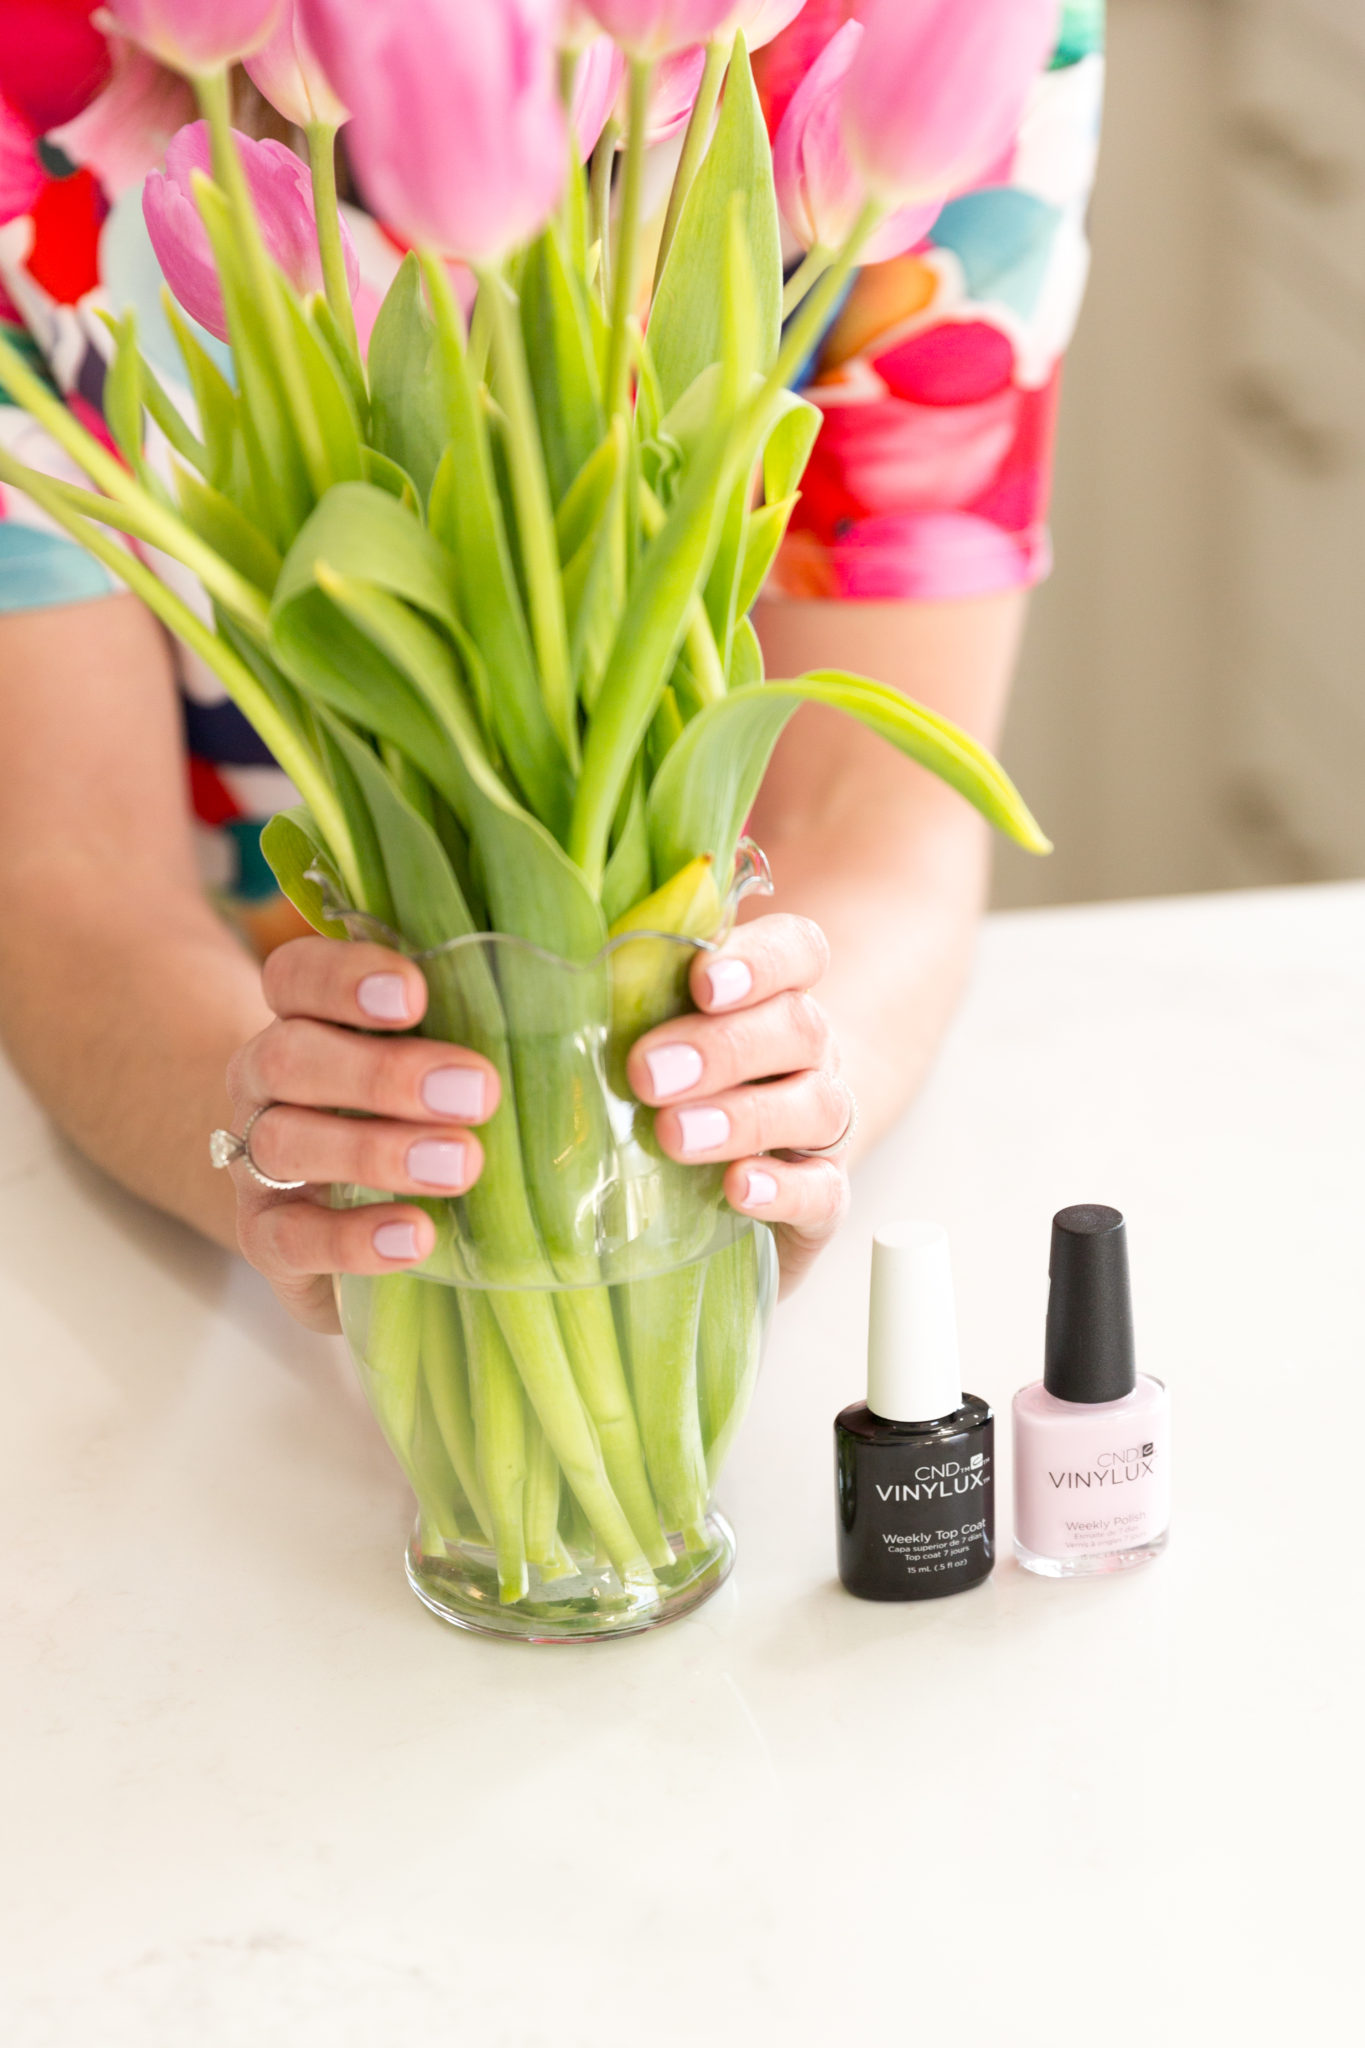 how to get a salon quality manicure at home | my tips for an at home manicure | cnd vinylux nail polish | shellac manicure at home on allweareblog.com